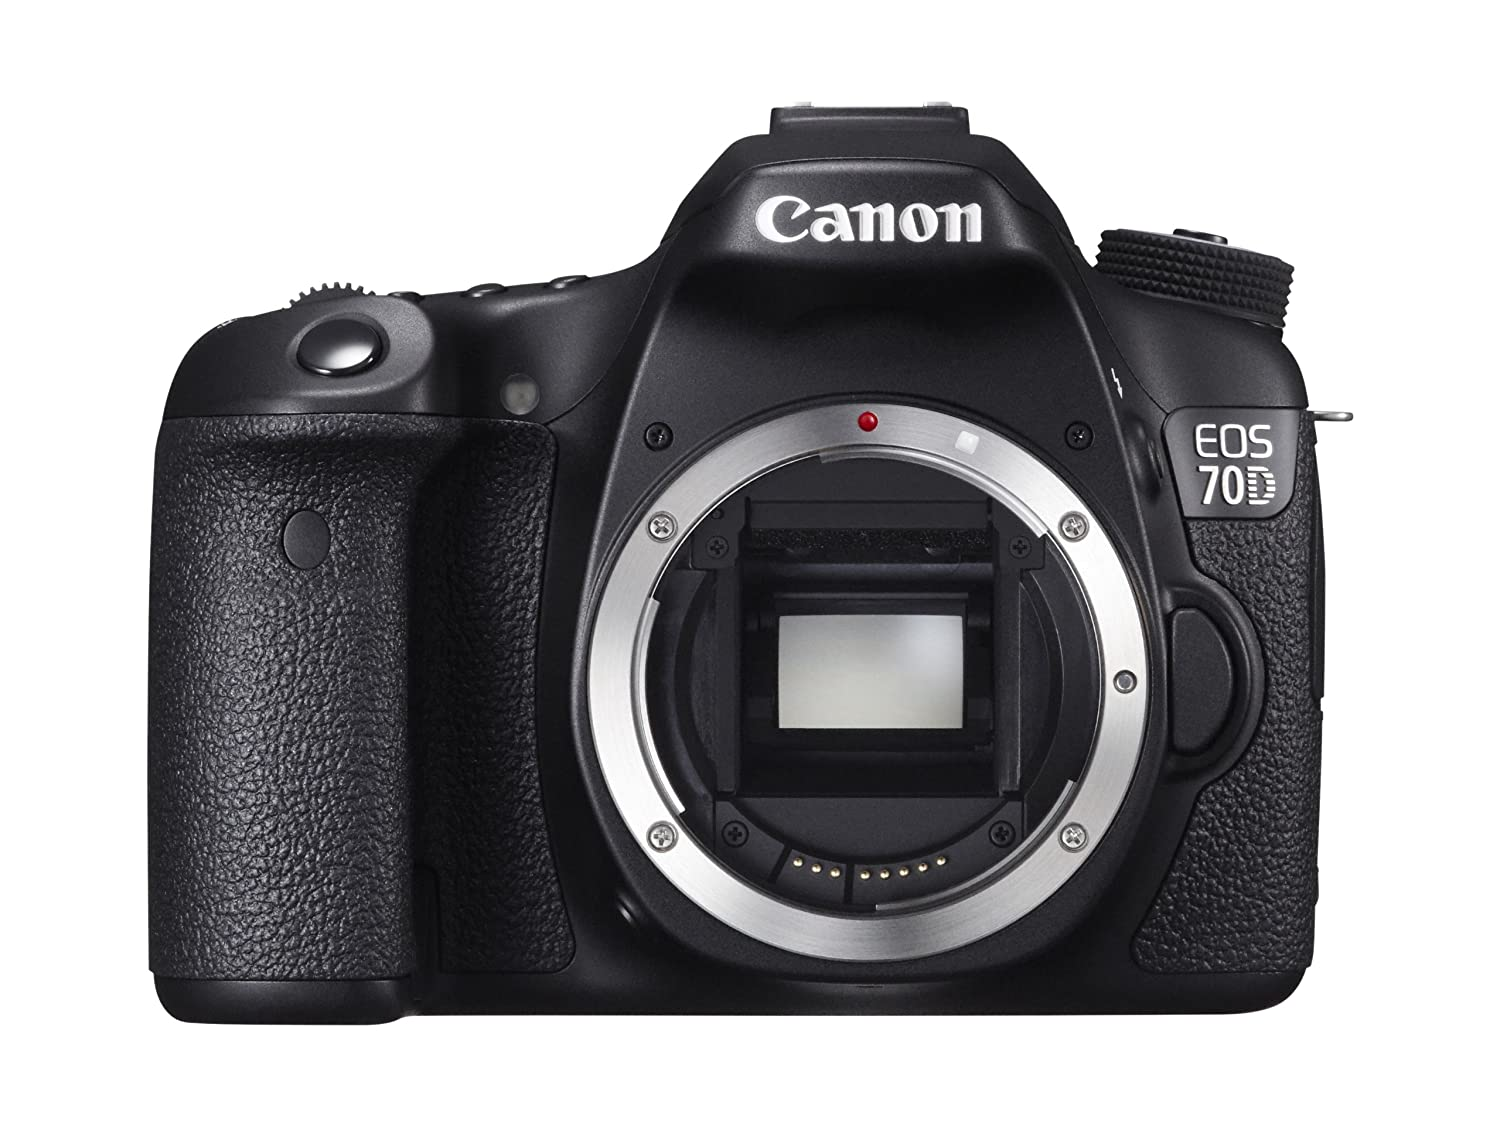 Amazon.com : Canon EOS 70D Digital SLR Camera (Body Only) : Camera ...